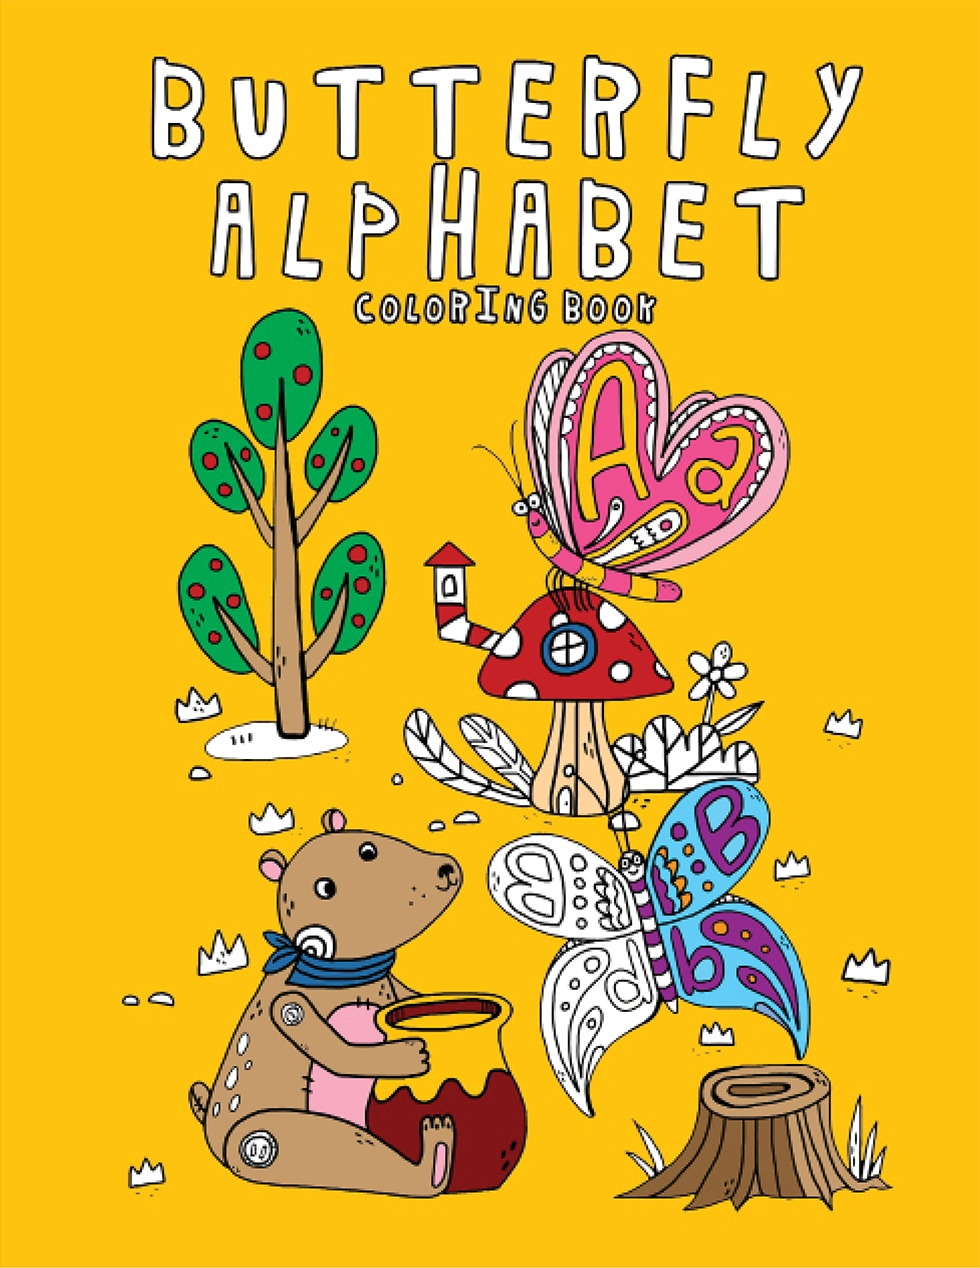 Happies - Butterfly Alphabet Coloring Book